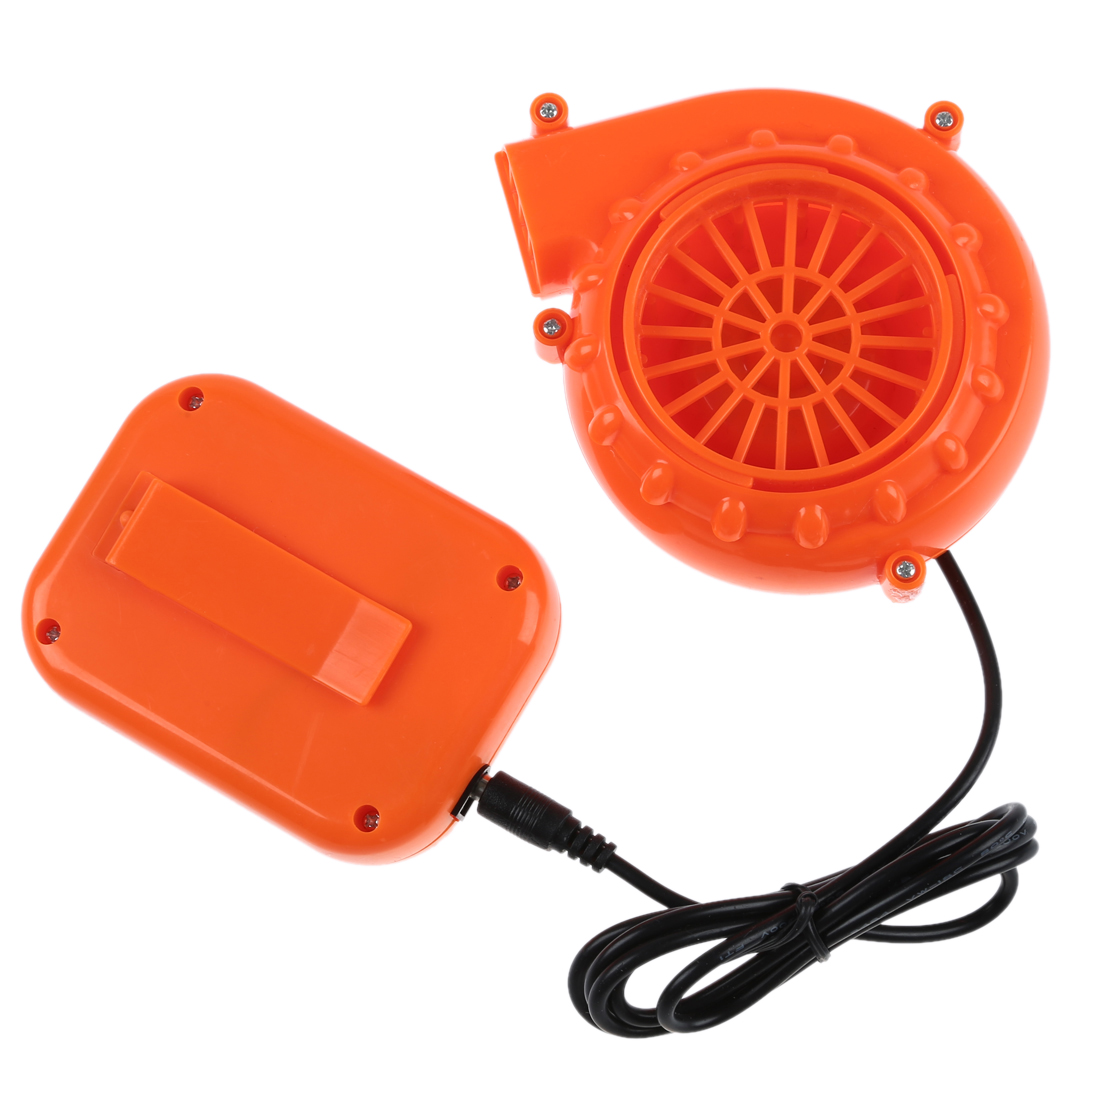 Mini Fan Blower for Mascot Head Inflatable Costume 6V Powered 4xAA Dry Battery Orange It can be used for gas mode, inflatable